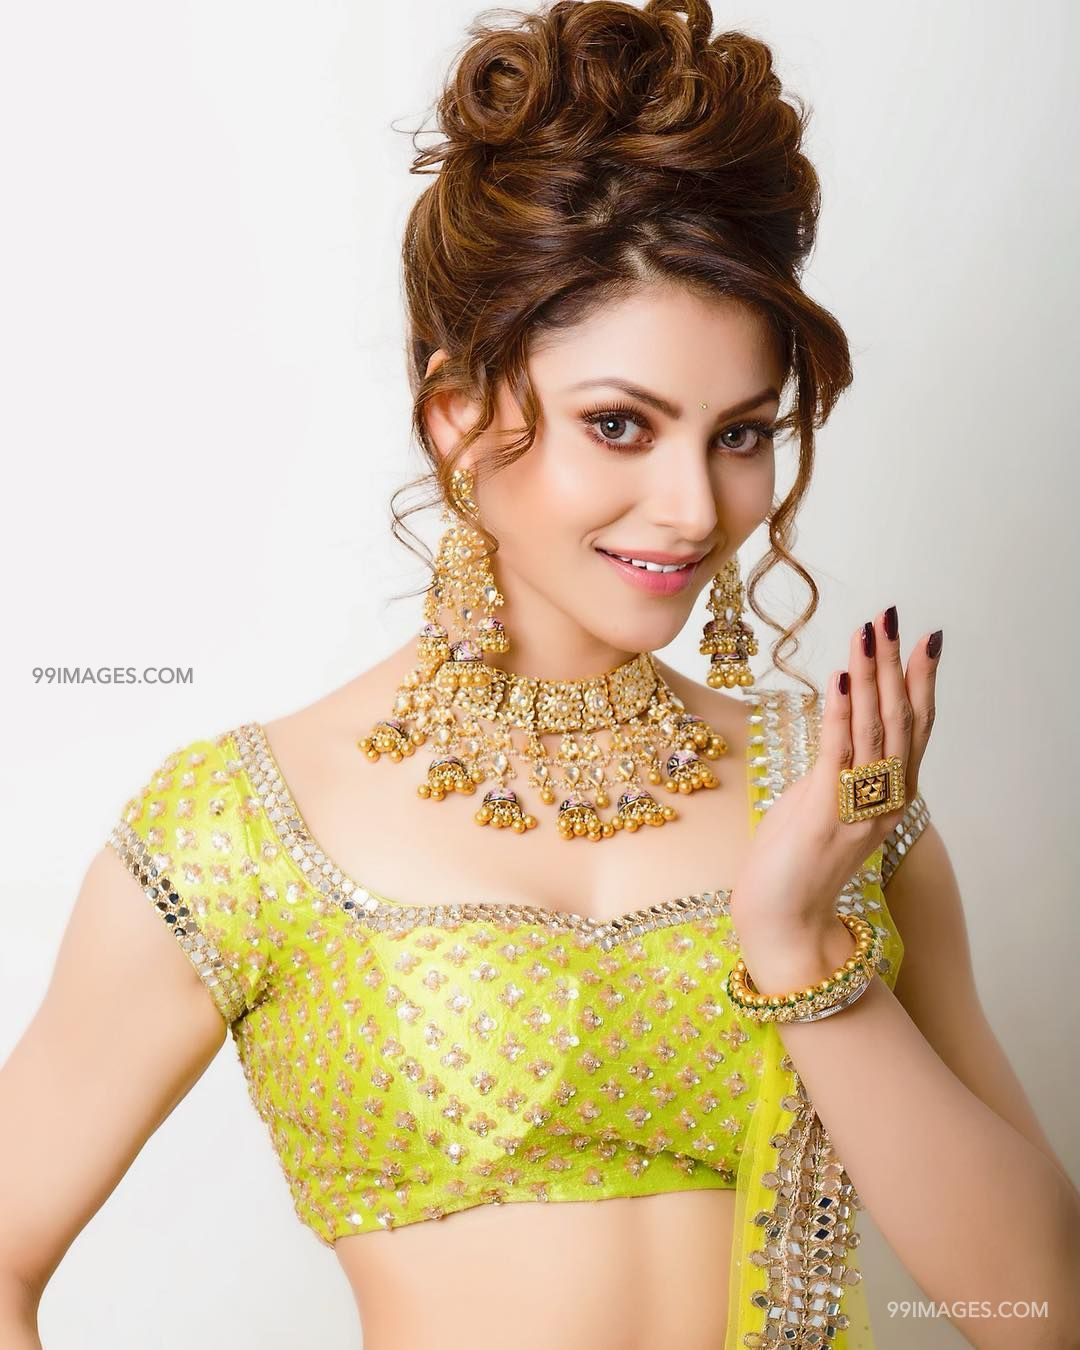 Urvashi Rautela Beautiful Photos & Mobile Wallpapers HD (Android/iPhone) (1080p) (36209) - Urvashi Rautela